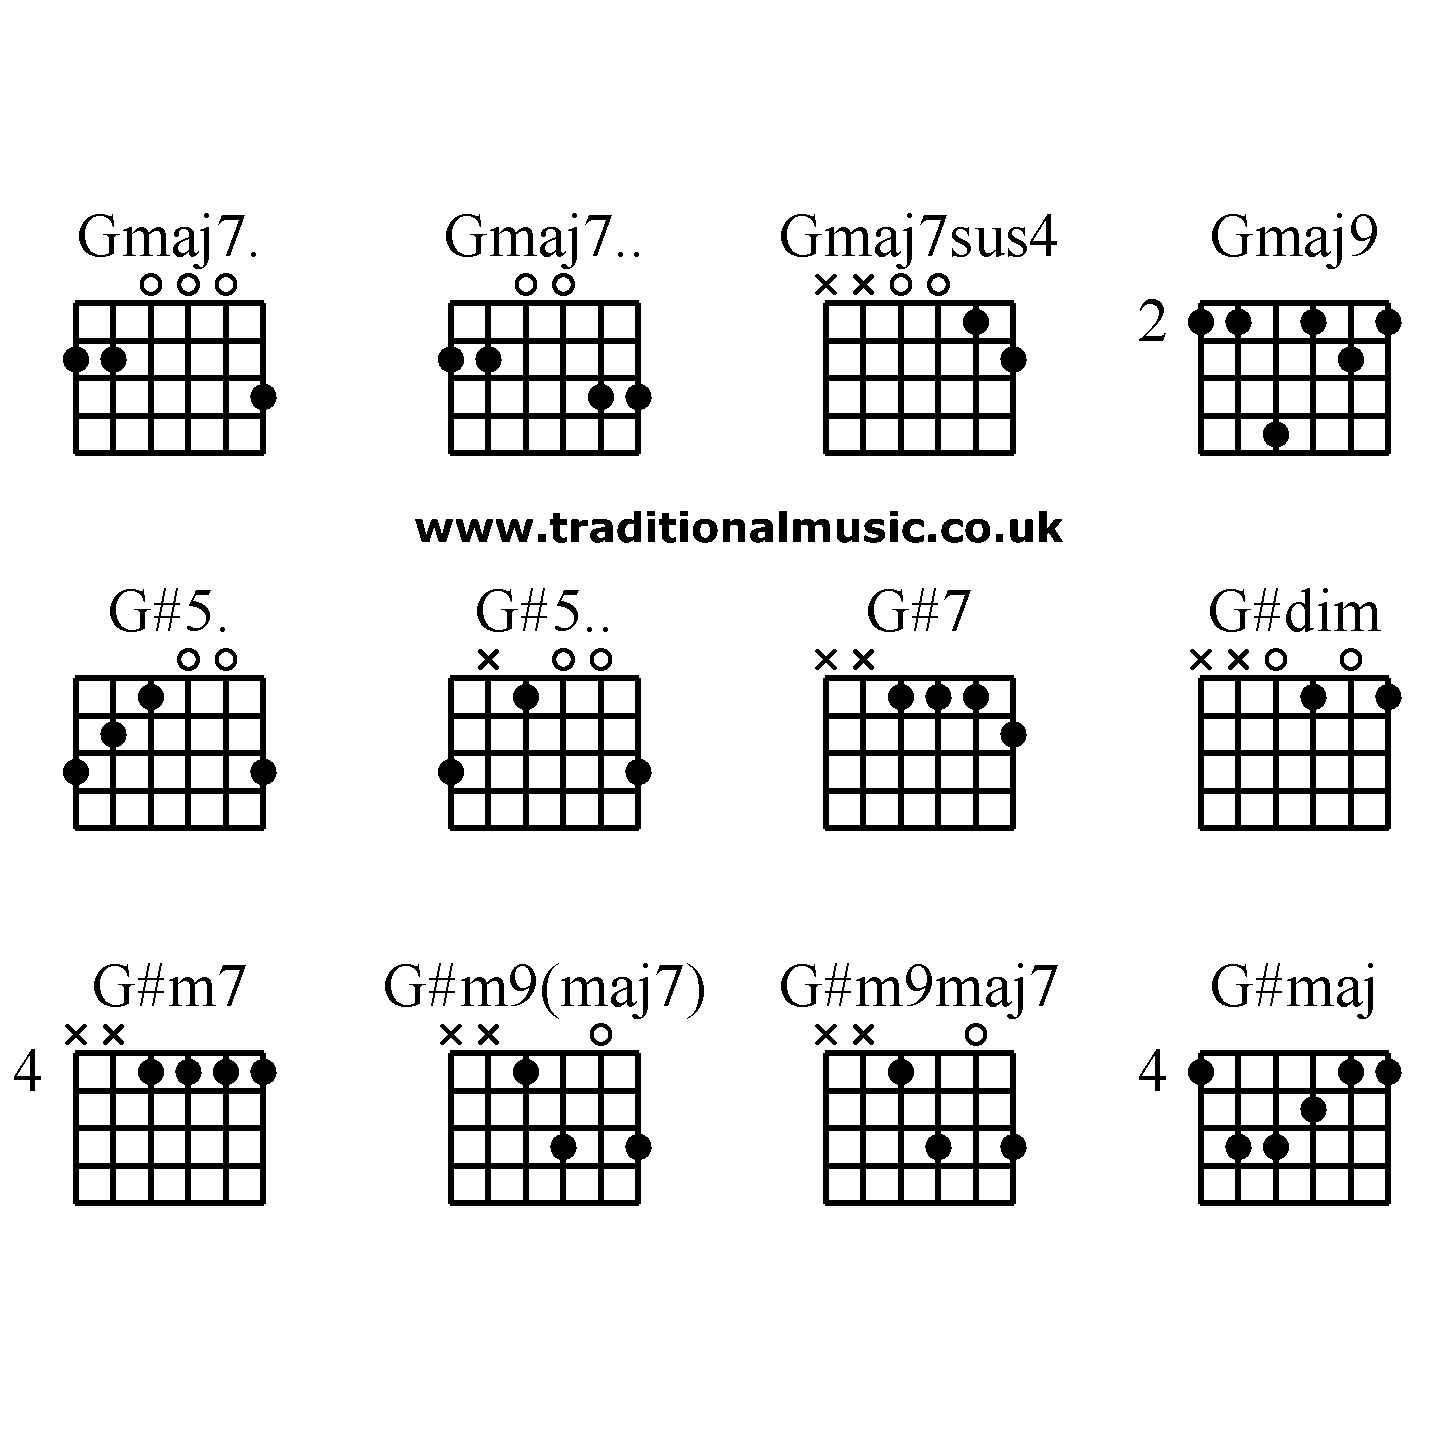 Gmaj7 Chord Guitar Finger Position submited images.